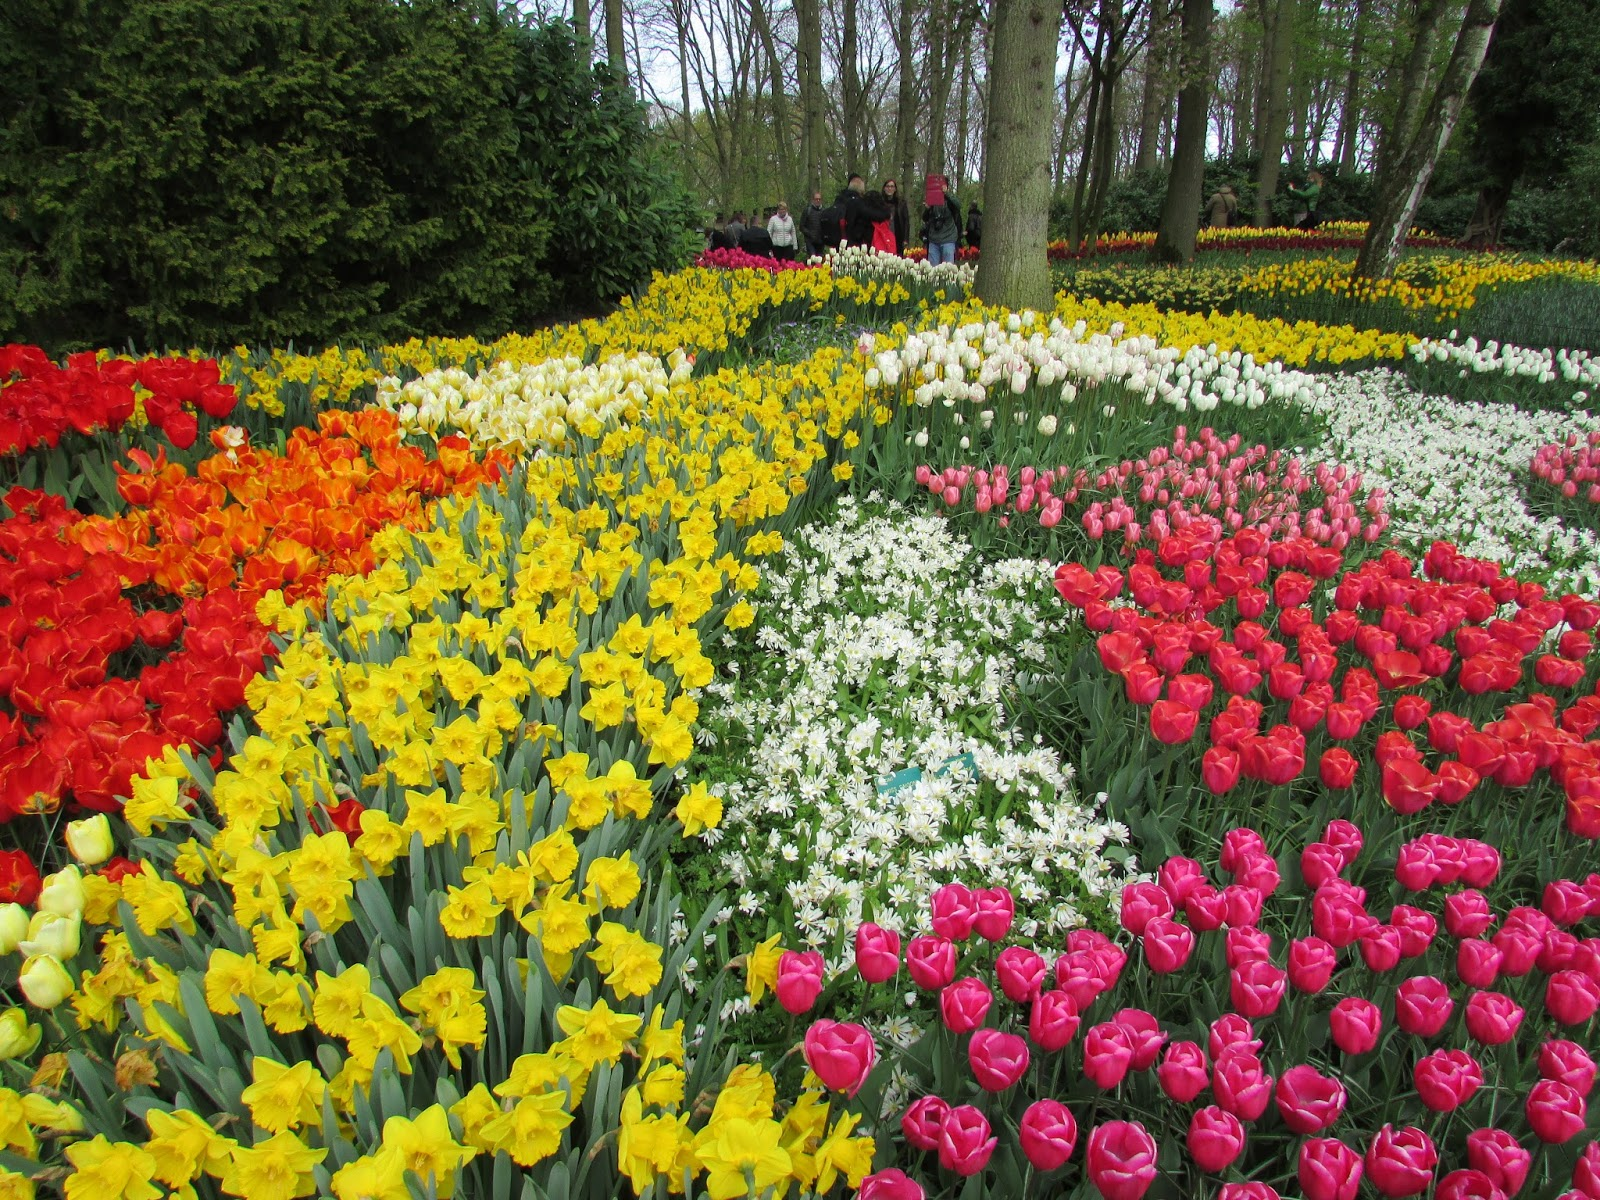 Keukenhof, The Netherlands